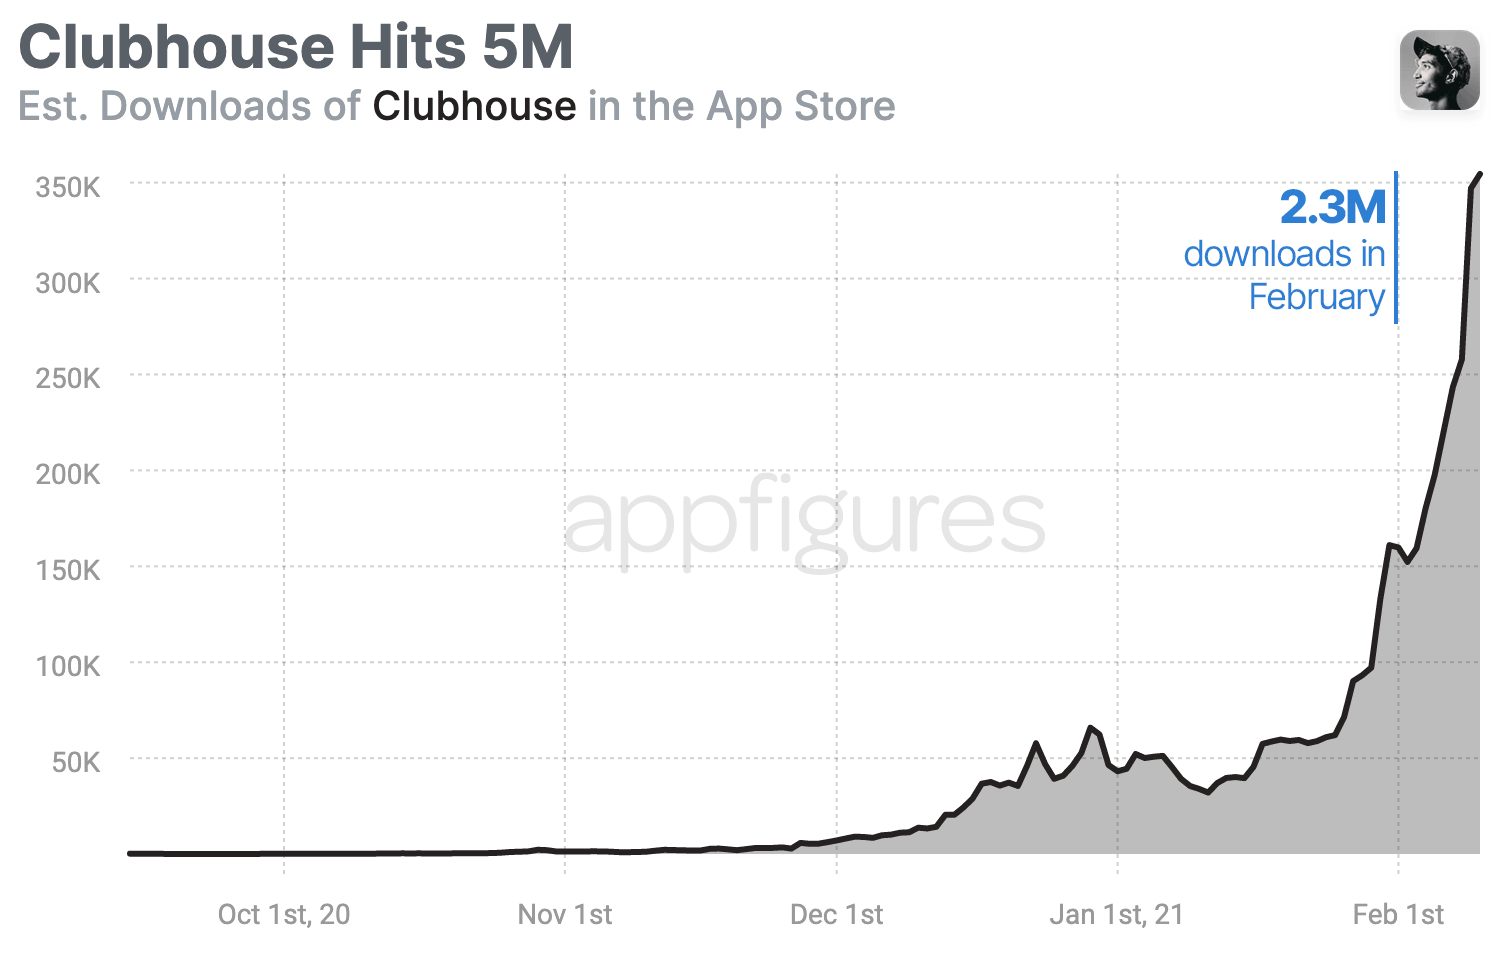 Estimated downloads of Clubhouse based on Appfigures app intelligence